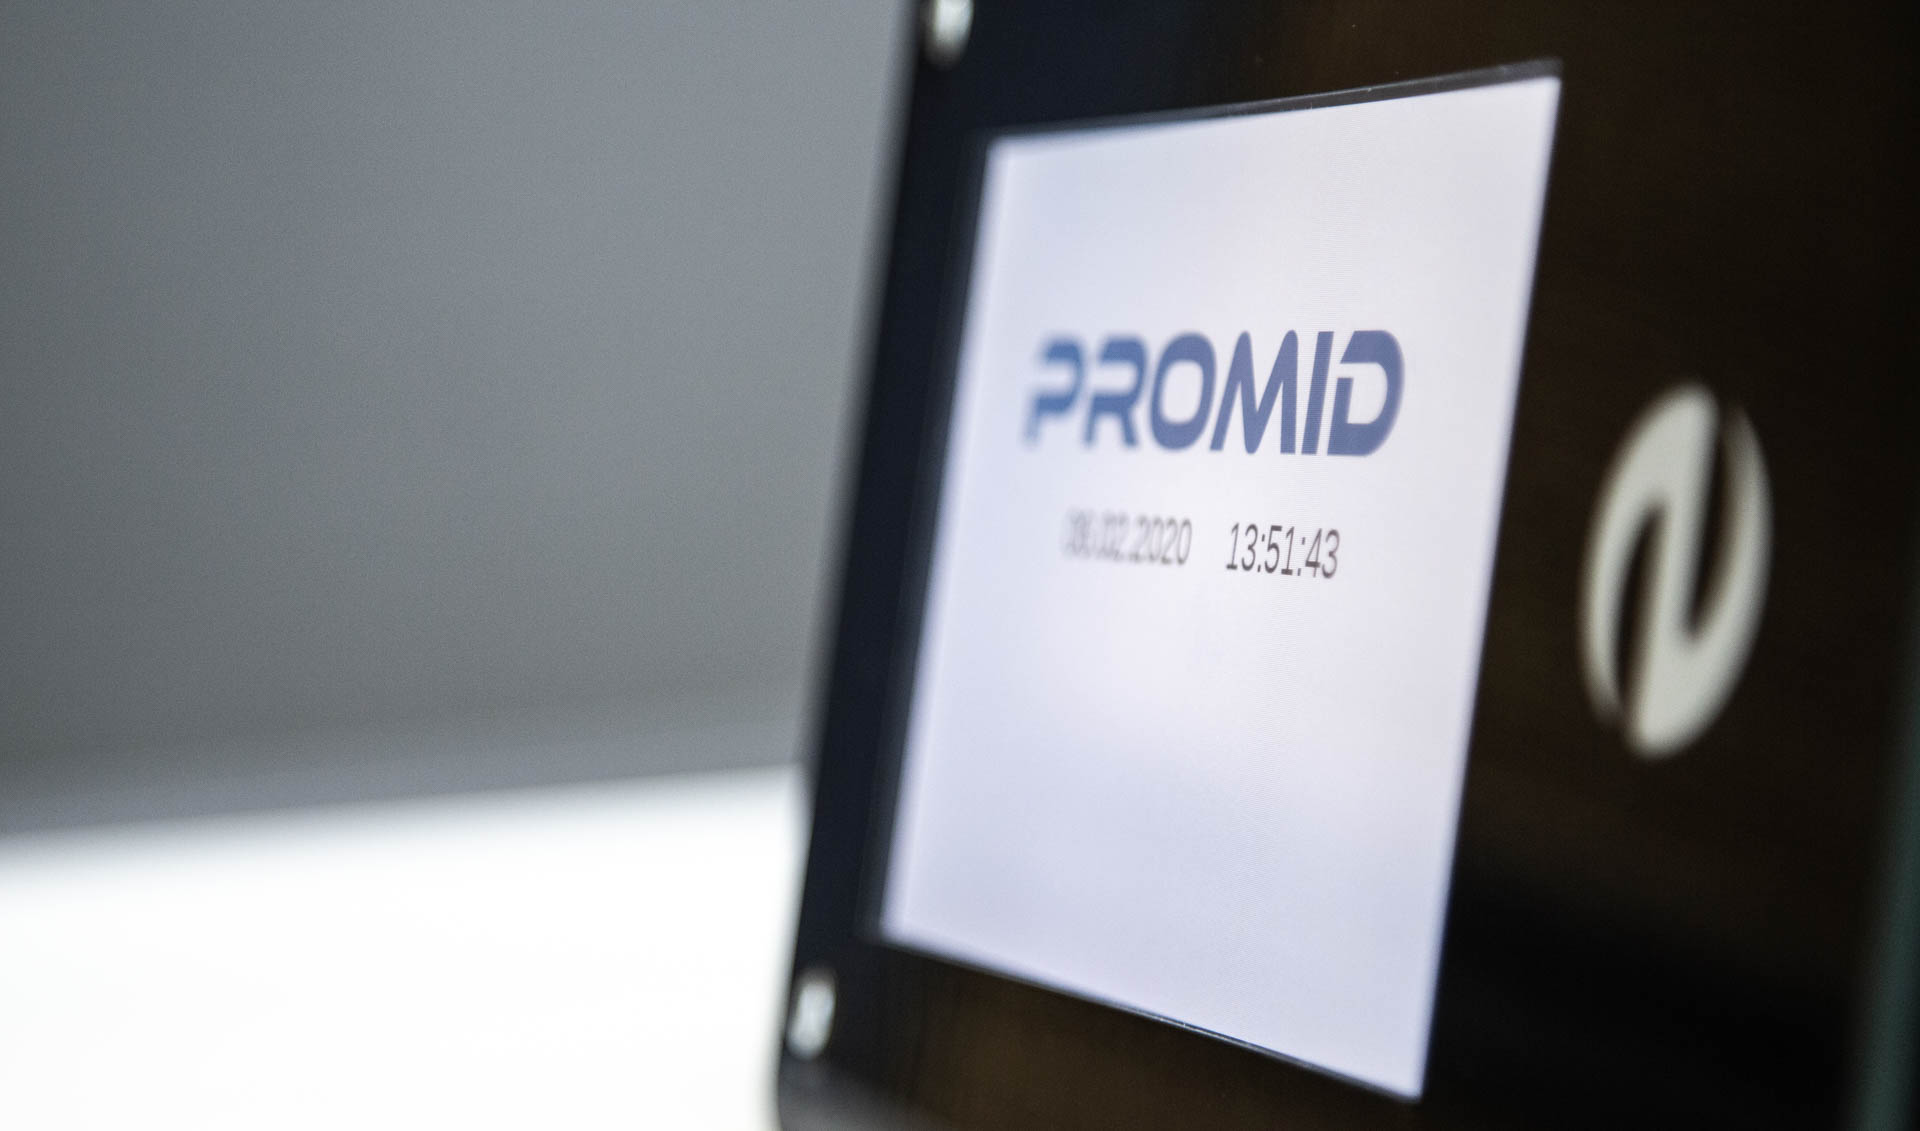 Picture of Promid